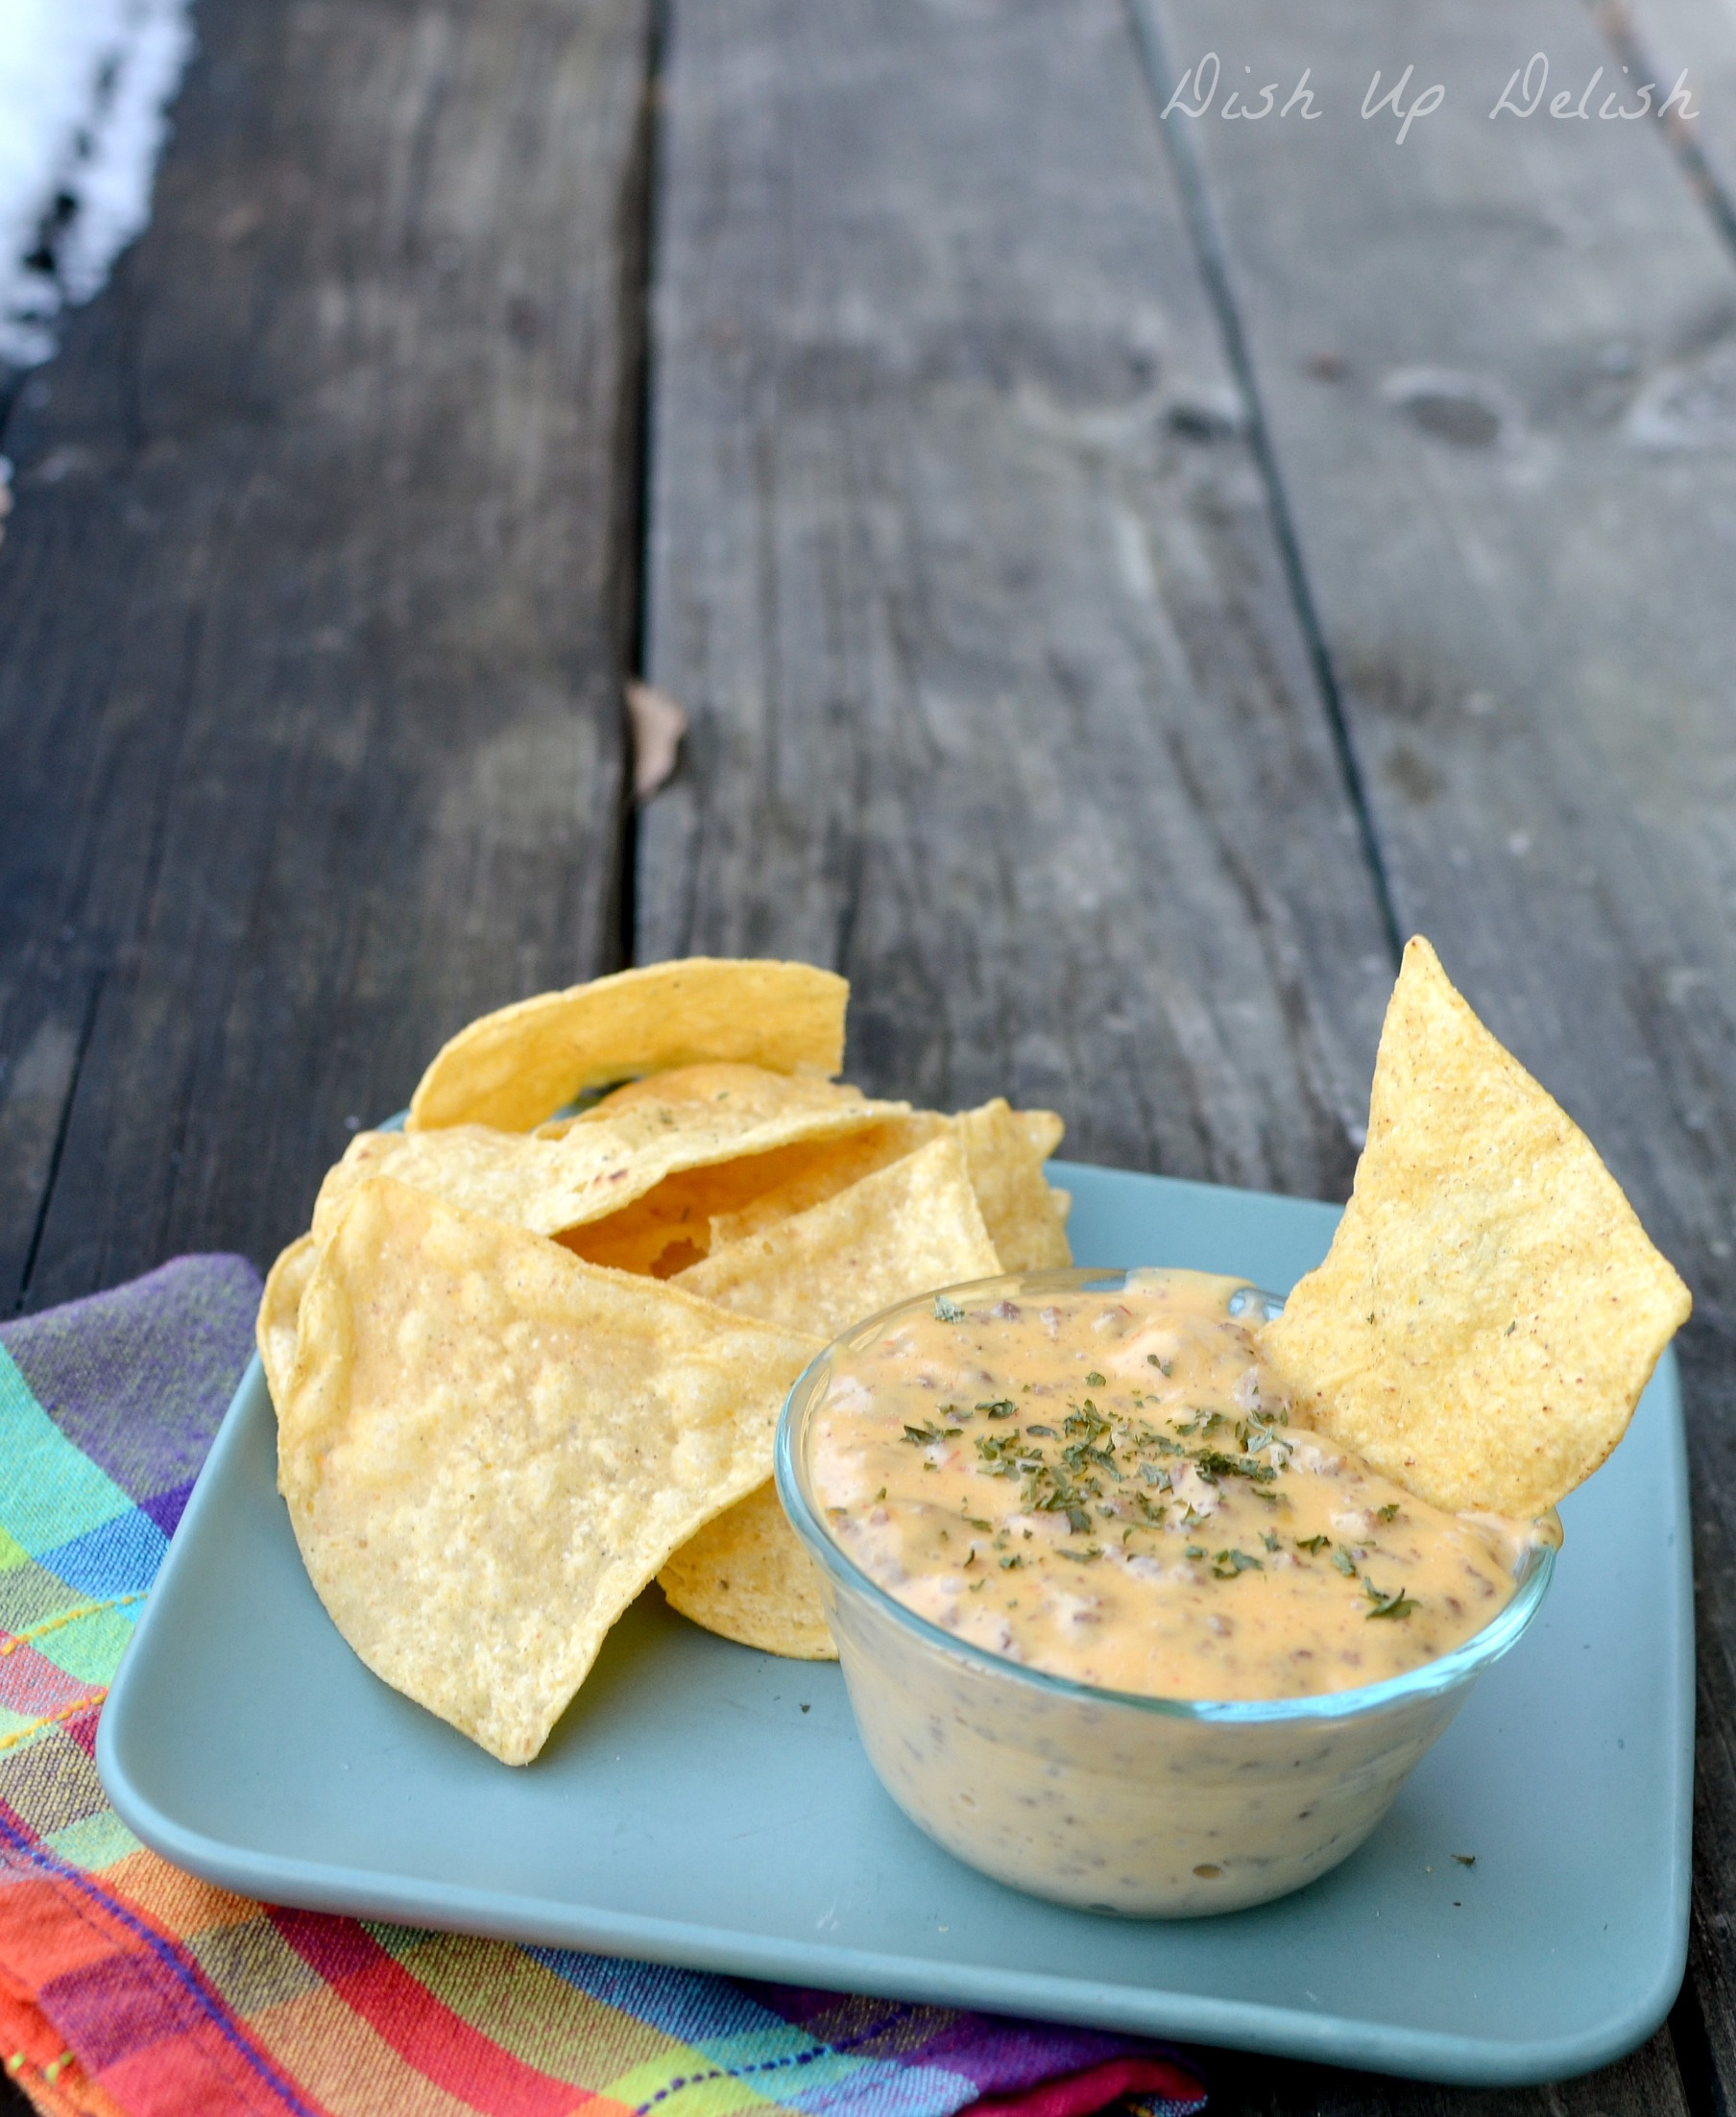 Meaty Queso Dish Up Delish